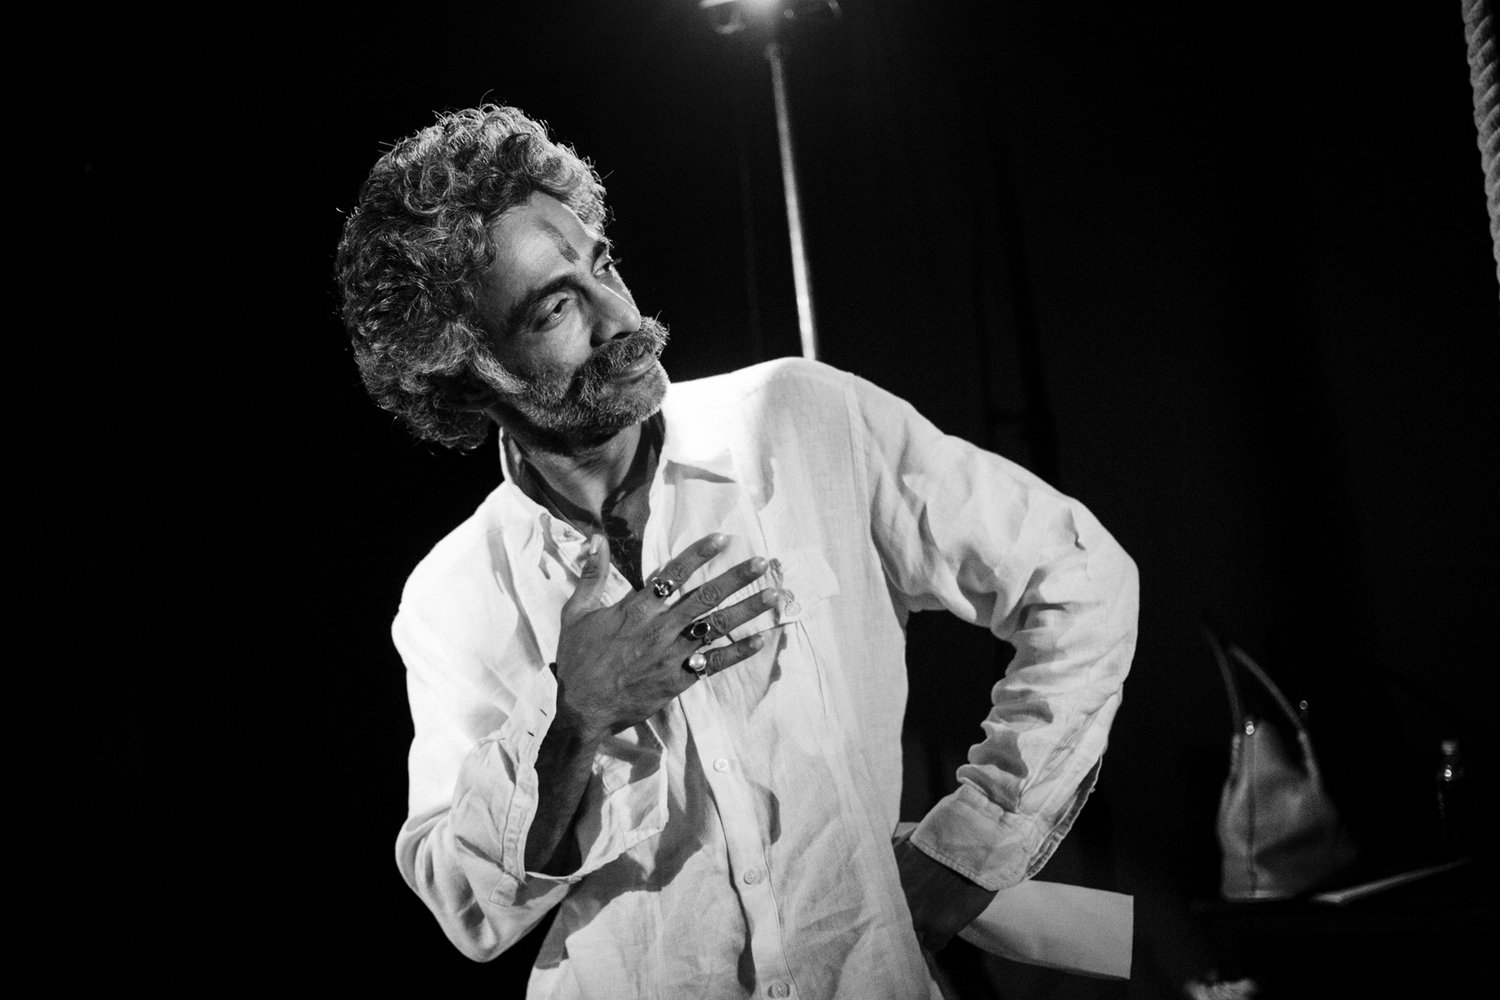 BWW Interview:  Actor director MAKARAND DESHPANDE on theater scene in India and his next project Sadak 2